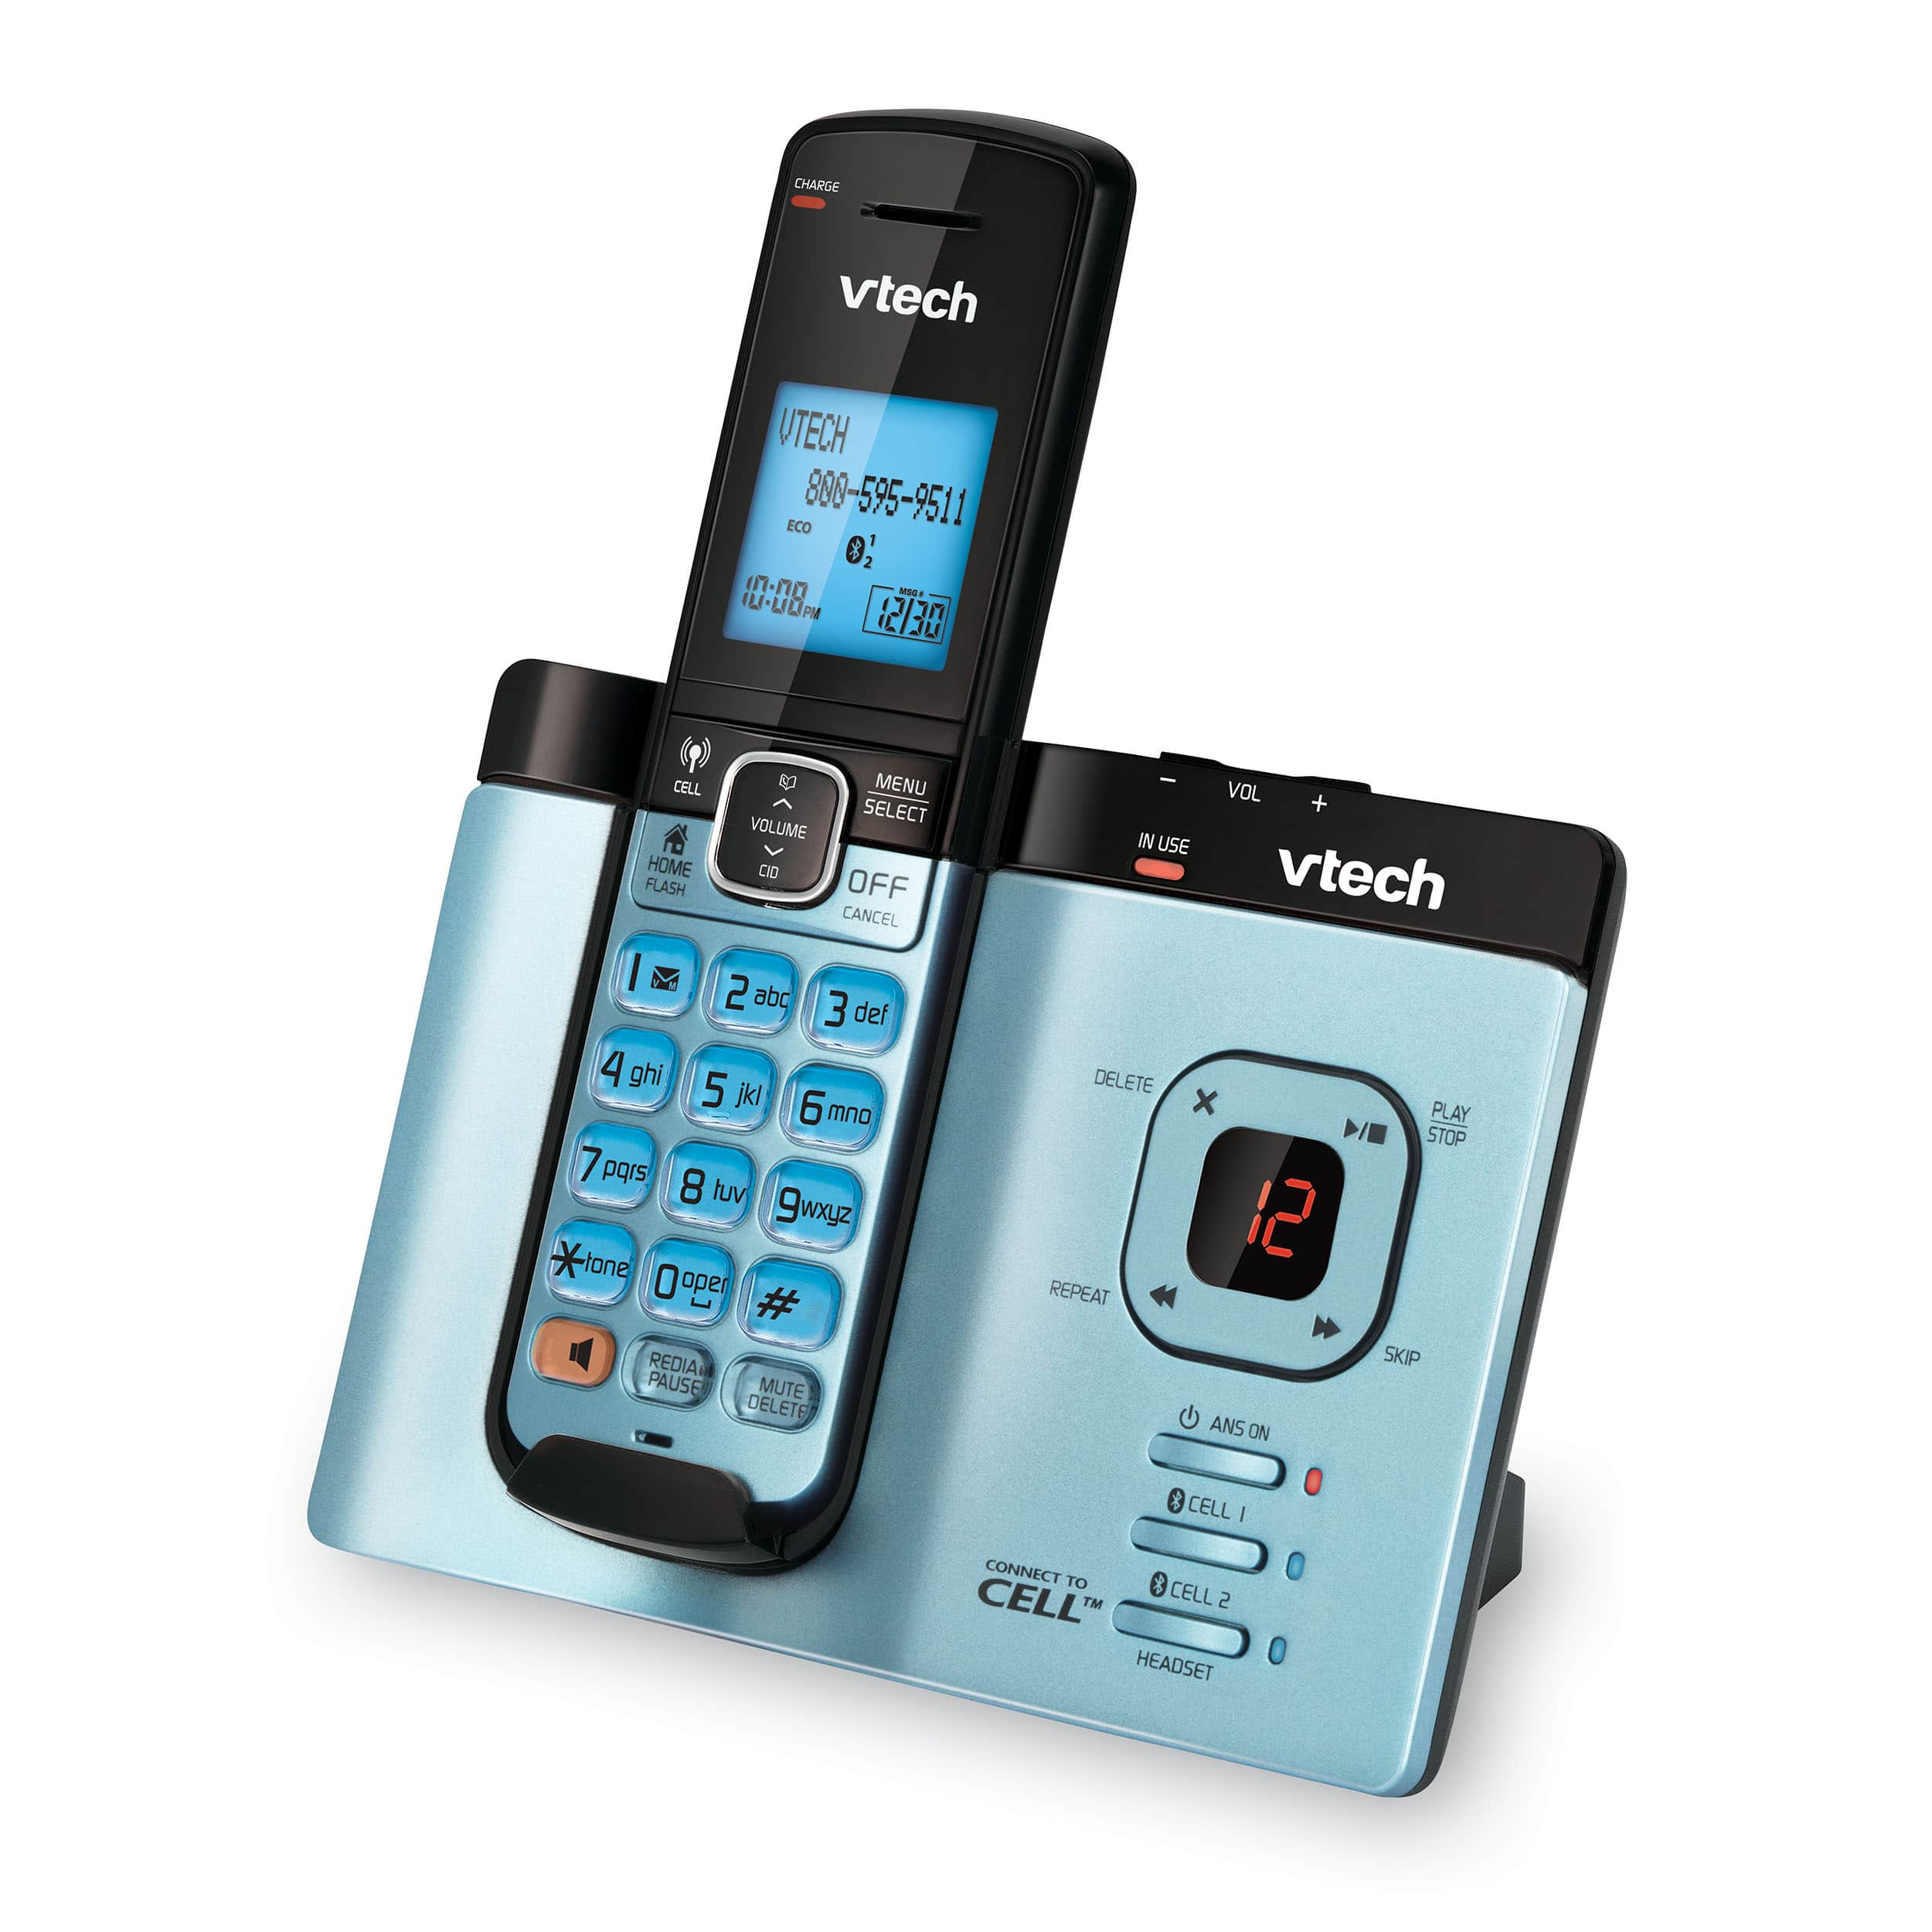 5 Handset Connect to Cell™ Phone System with Caller ID/Call Waiting